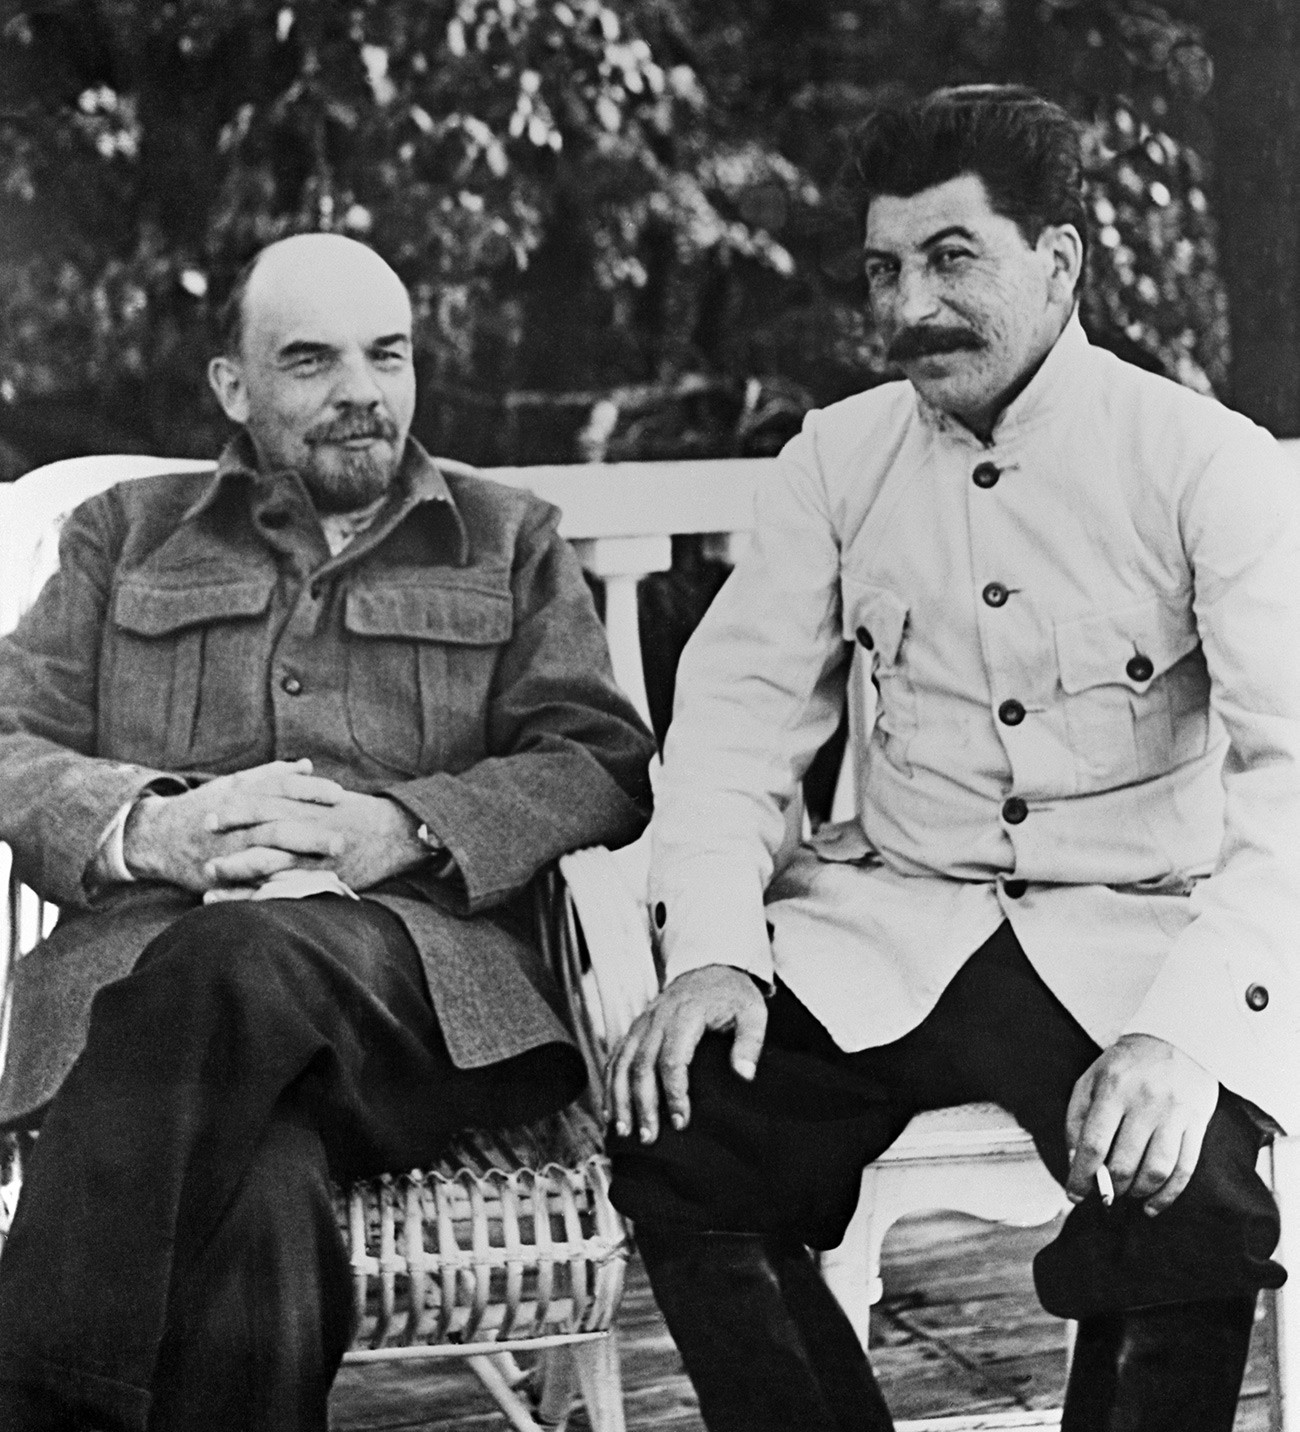 Joseph Stalin and Vladimir Lenin in the countryside.